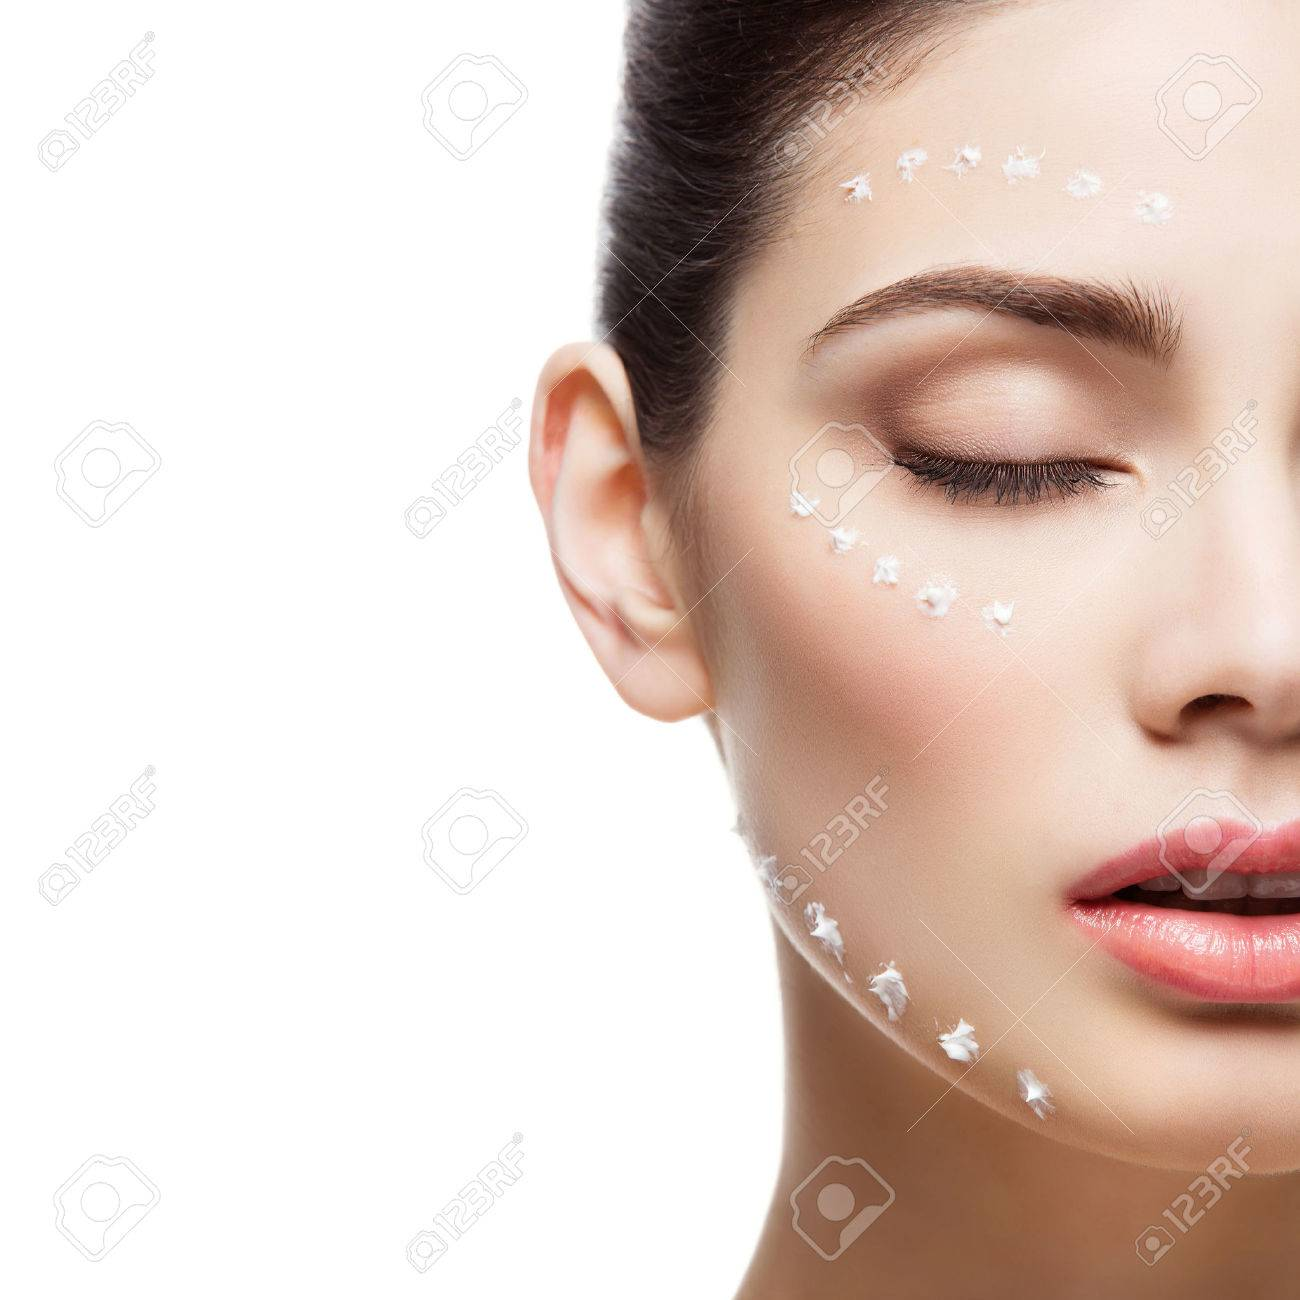 Beautiful young woman with moisturizing cream dots on face. Isolated over white background. Copy space. Square composition. - 55740326